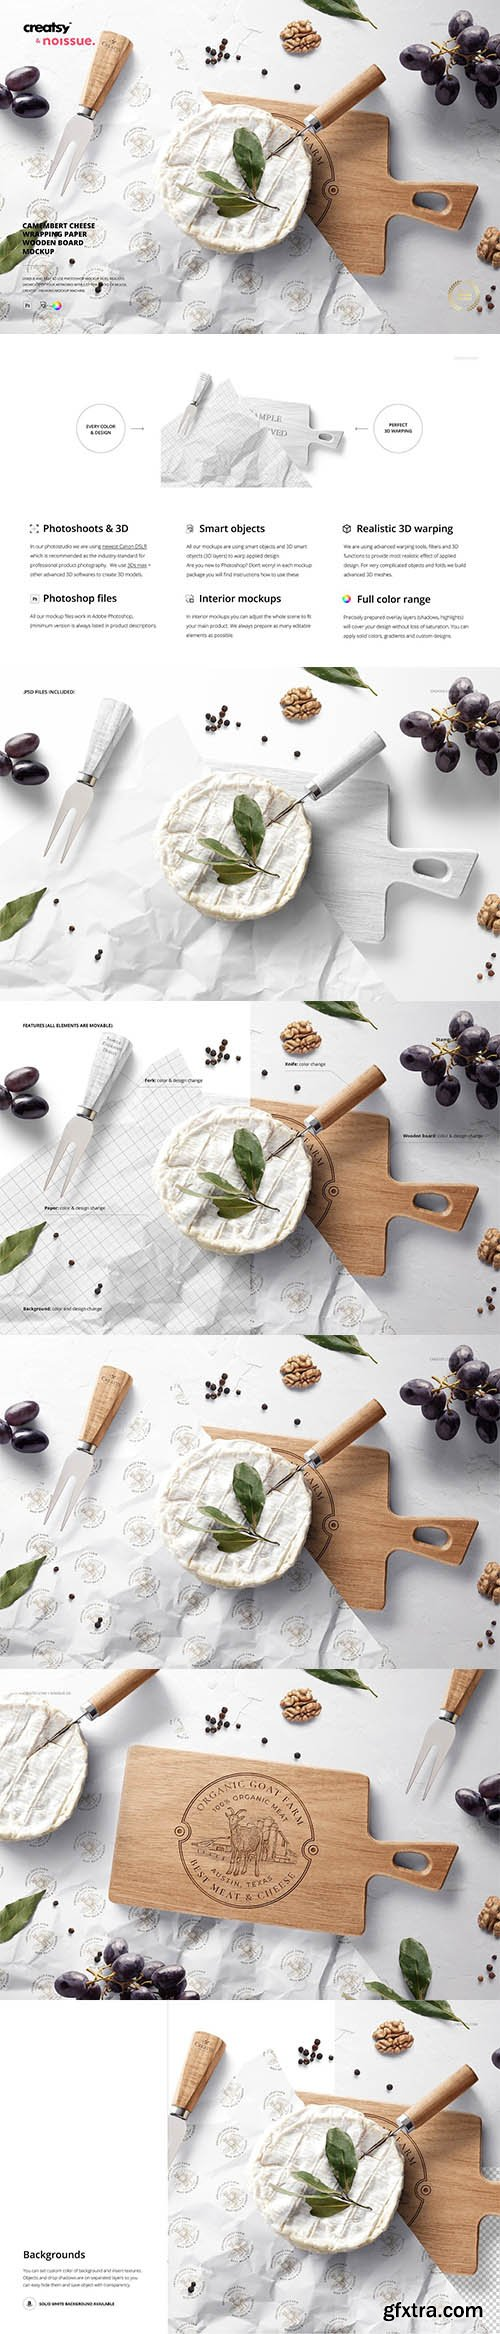 CreativeMarket - Wrapping Paper Wooden Board Mockup 6389448